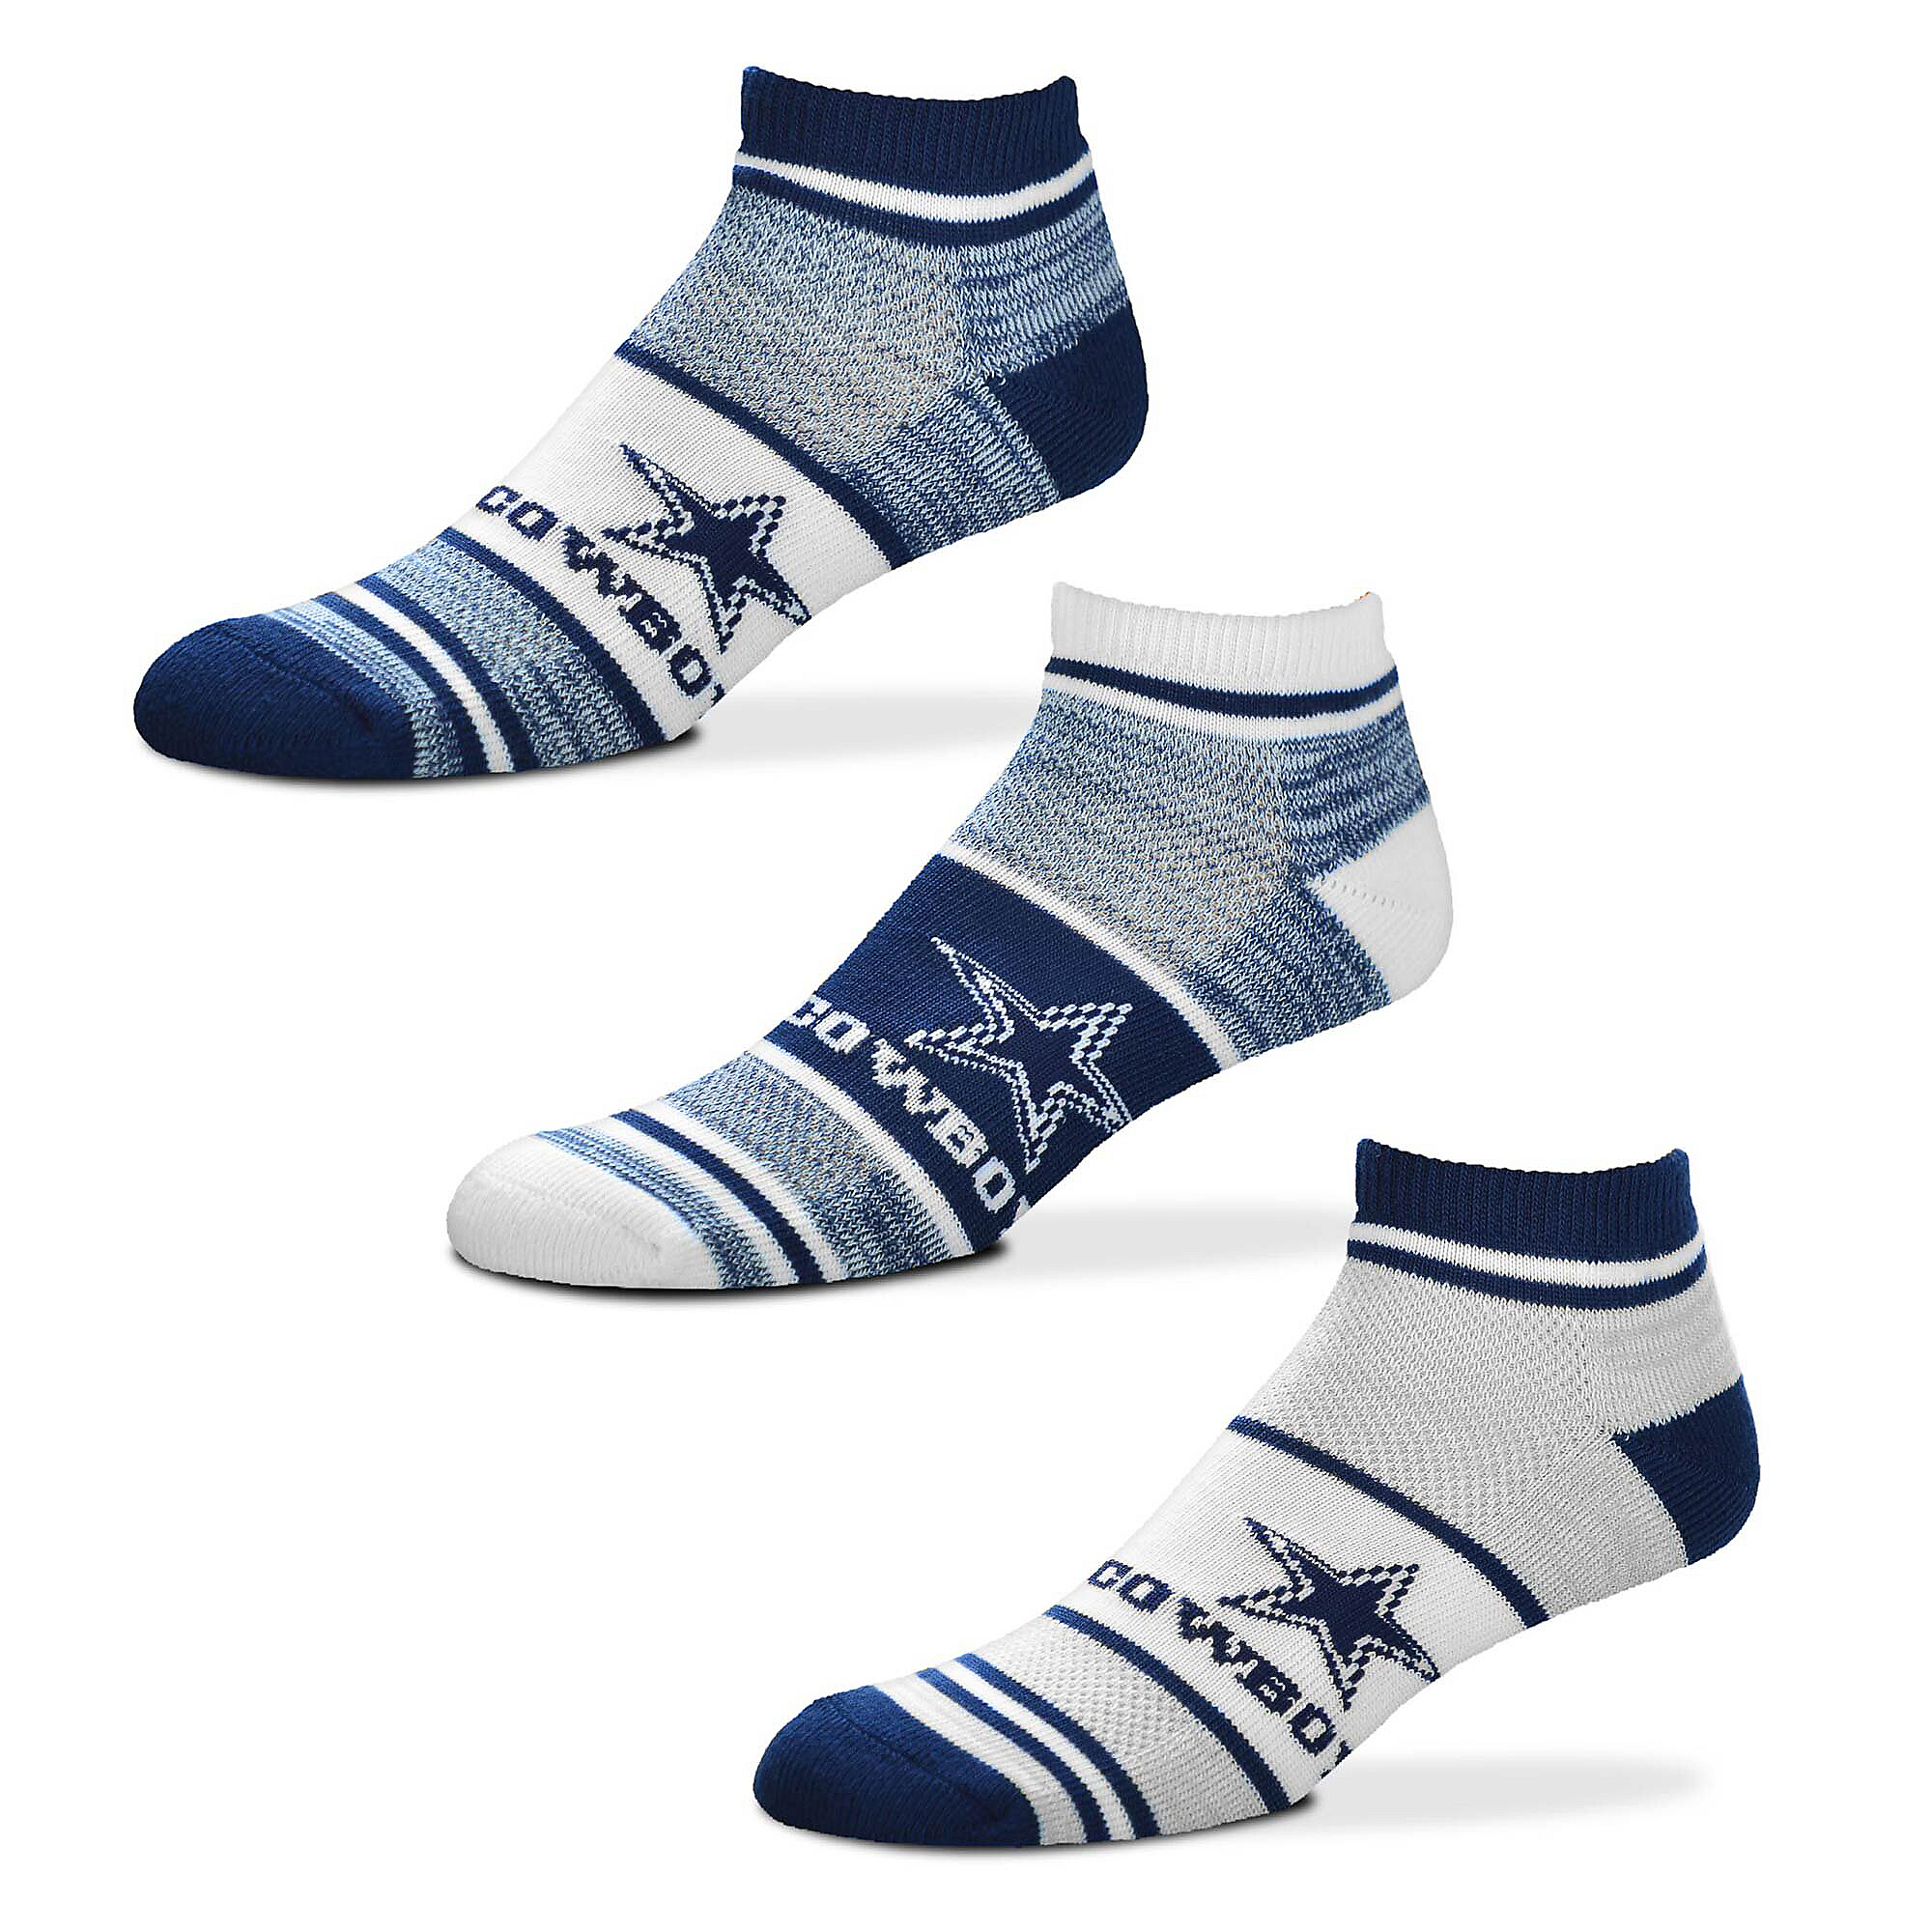 Dallas Cowboys Triplex Heathered Lightweight Socks - 3 Pack